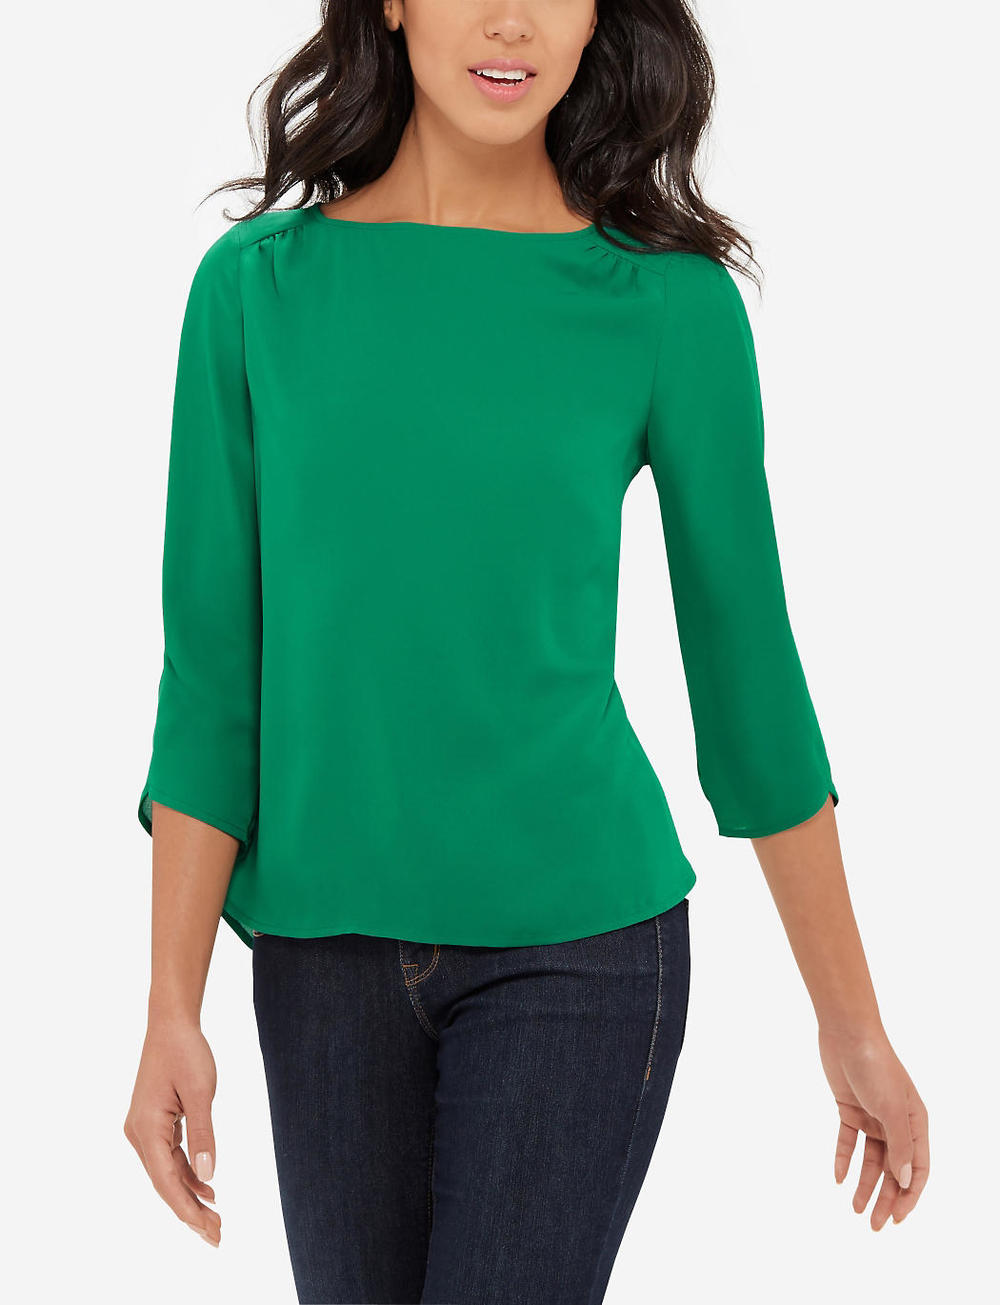 Boatneck Blouse. Available in multiple colors. The Limited. Was: $49 Now: $24.